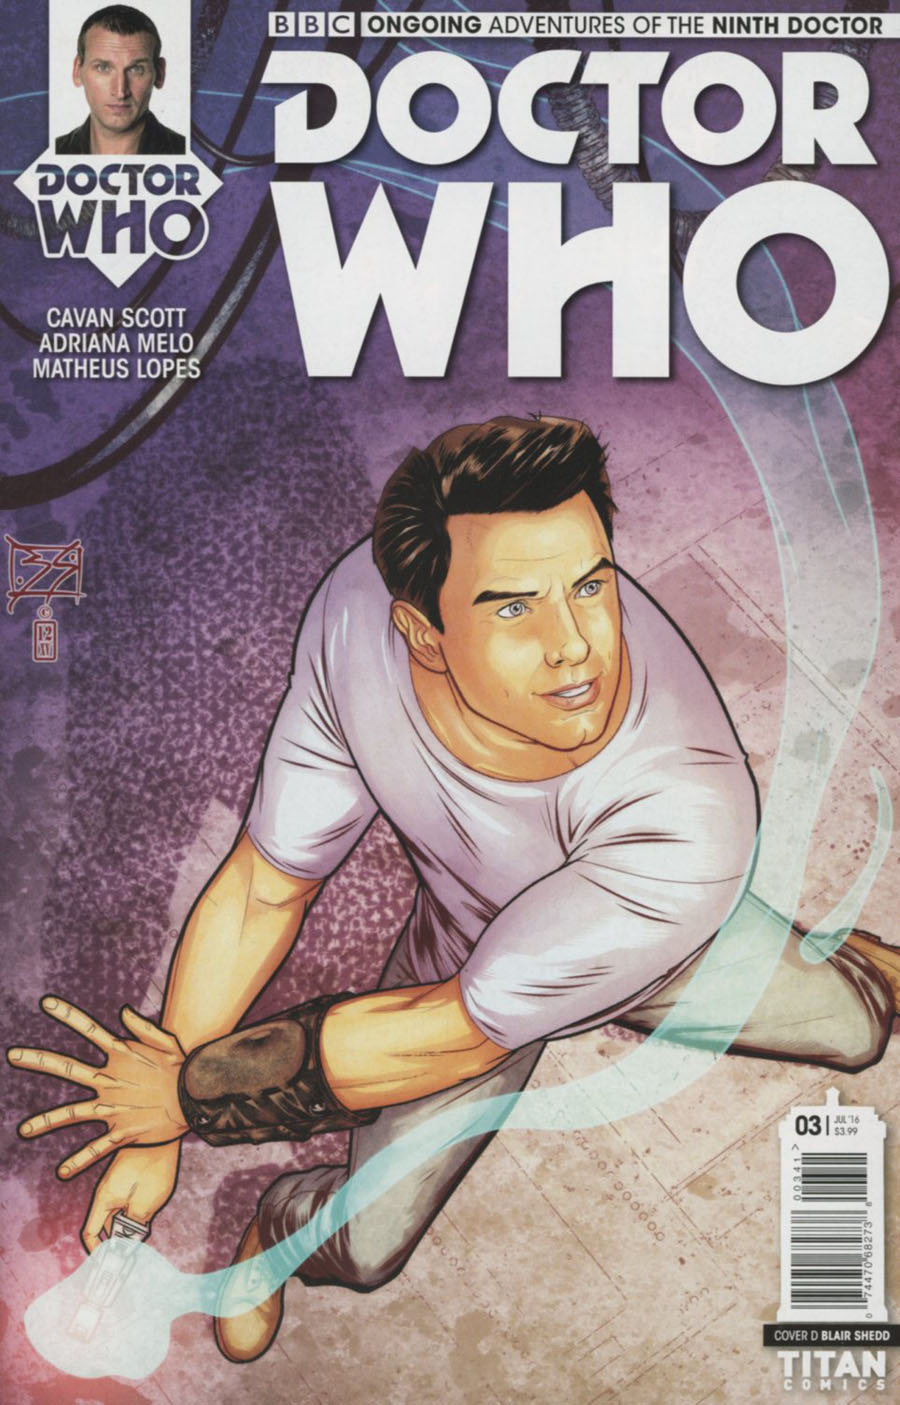 Doctor Who 9th Doctor Vol 2 #3 Cover D Variant Blair Shedd Cover